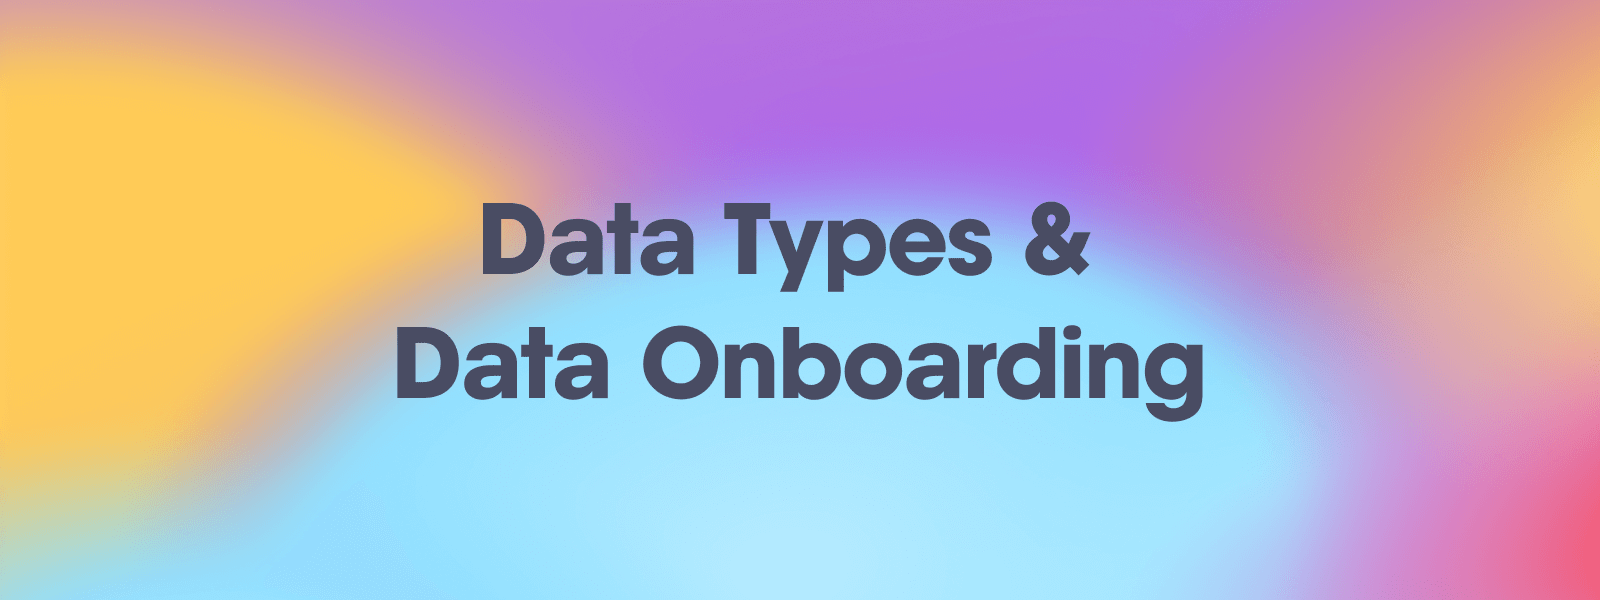 Data Types & Data Onboarding